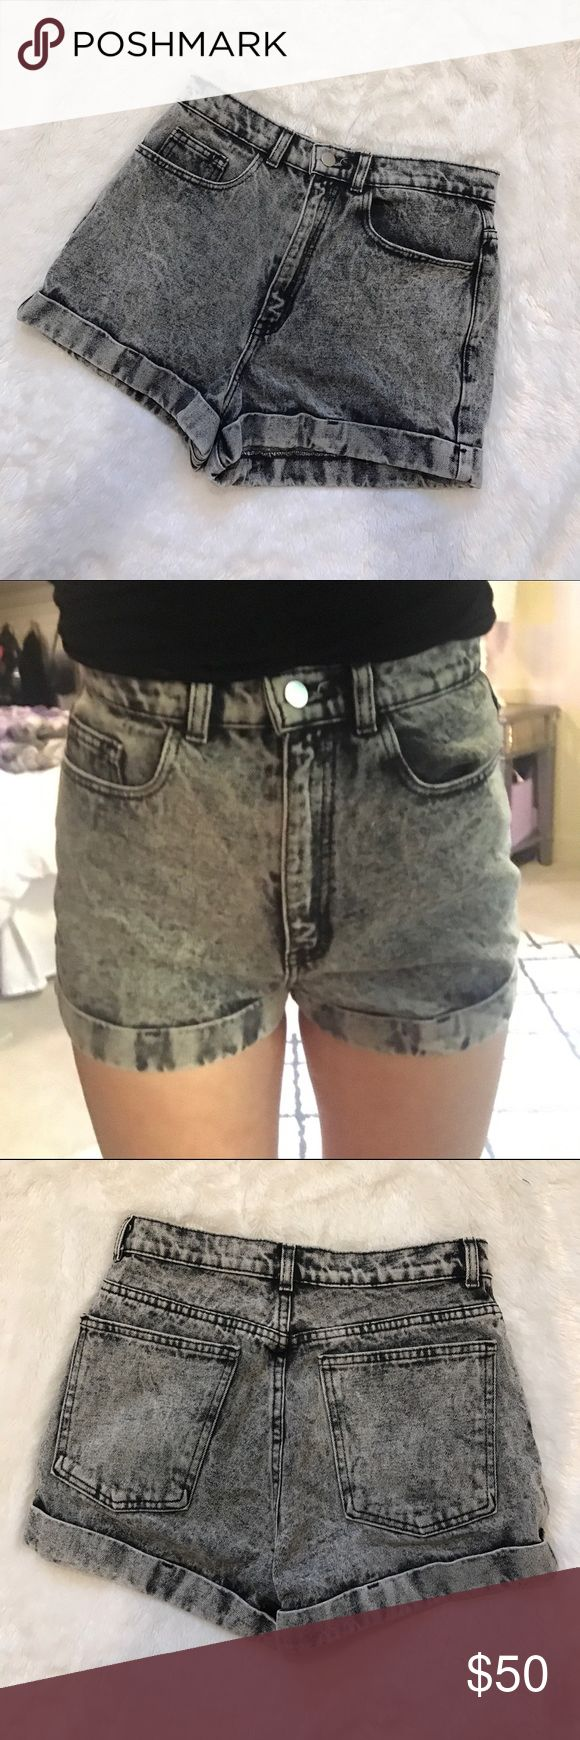 American Apparel Jean Shorts These high waisted jean shorts are in perfect condition and they fit great. They are a 29 but they fit more like a 28. They are now rare shorts since American Apparel shut down. American Apparel Shorts Jean Shorts